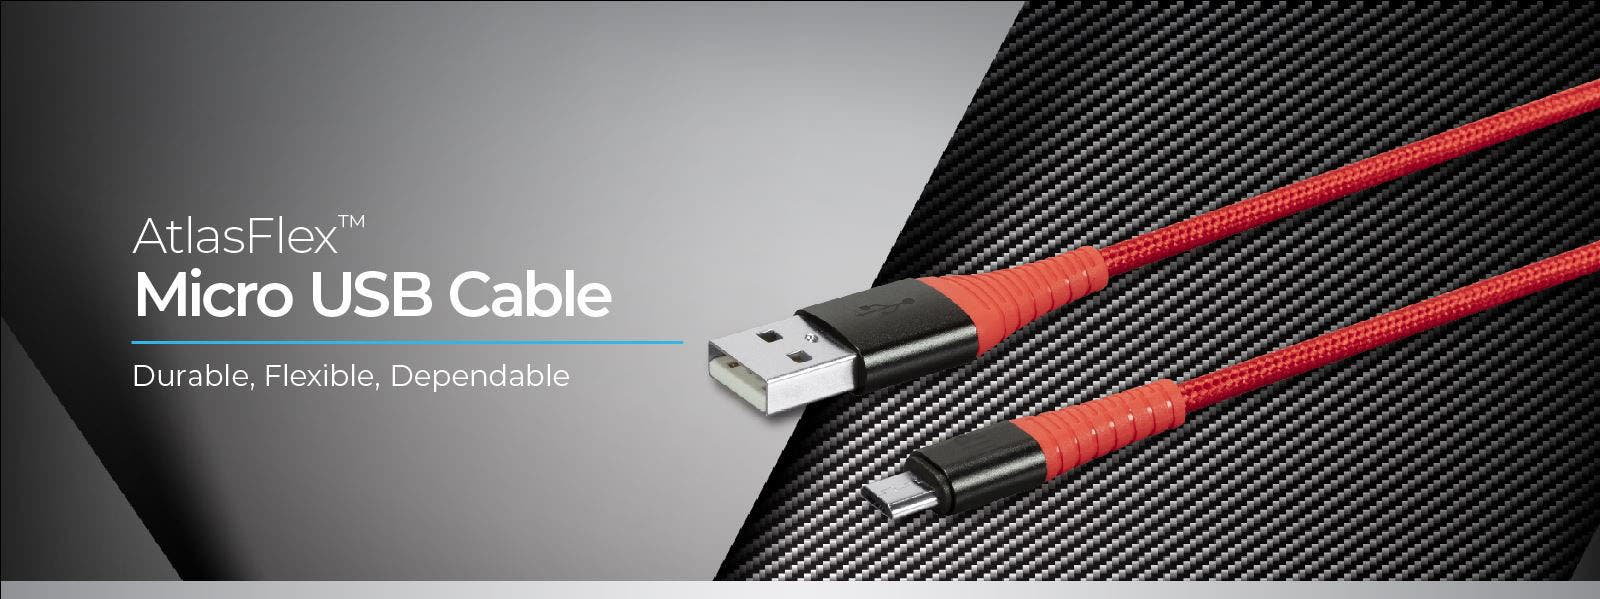 AtlasFlex Micro USB Cable